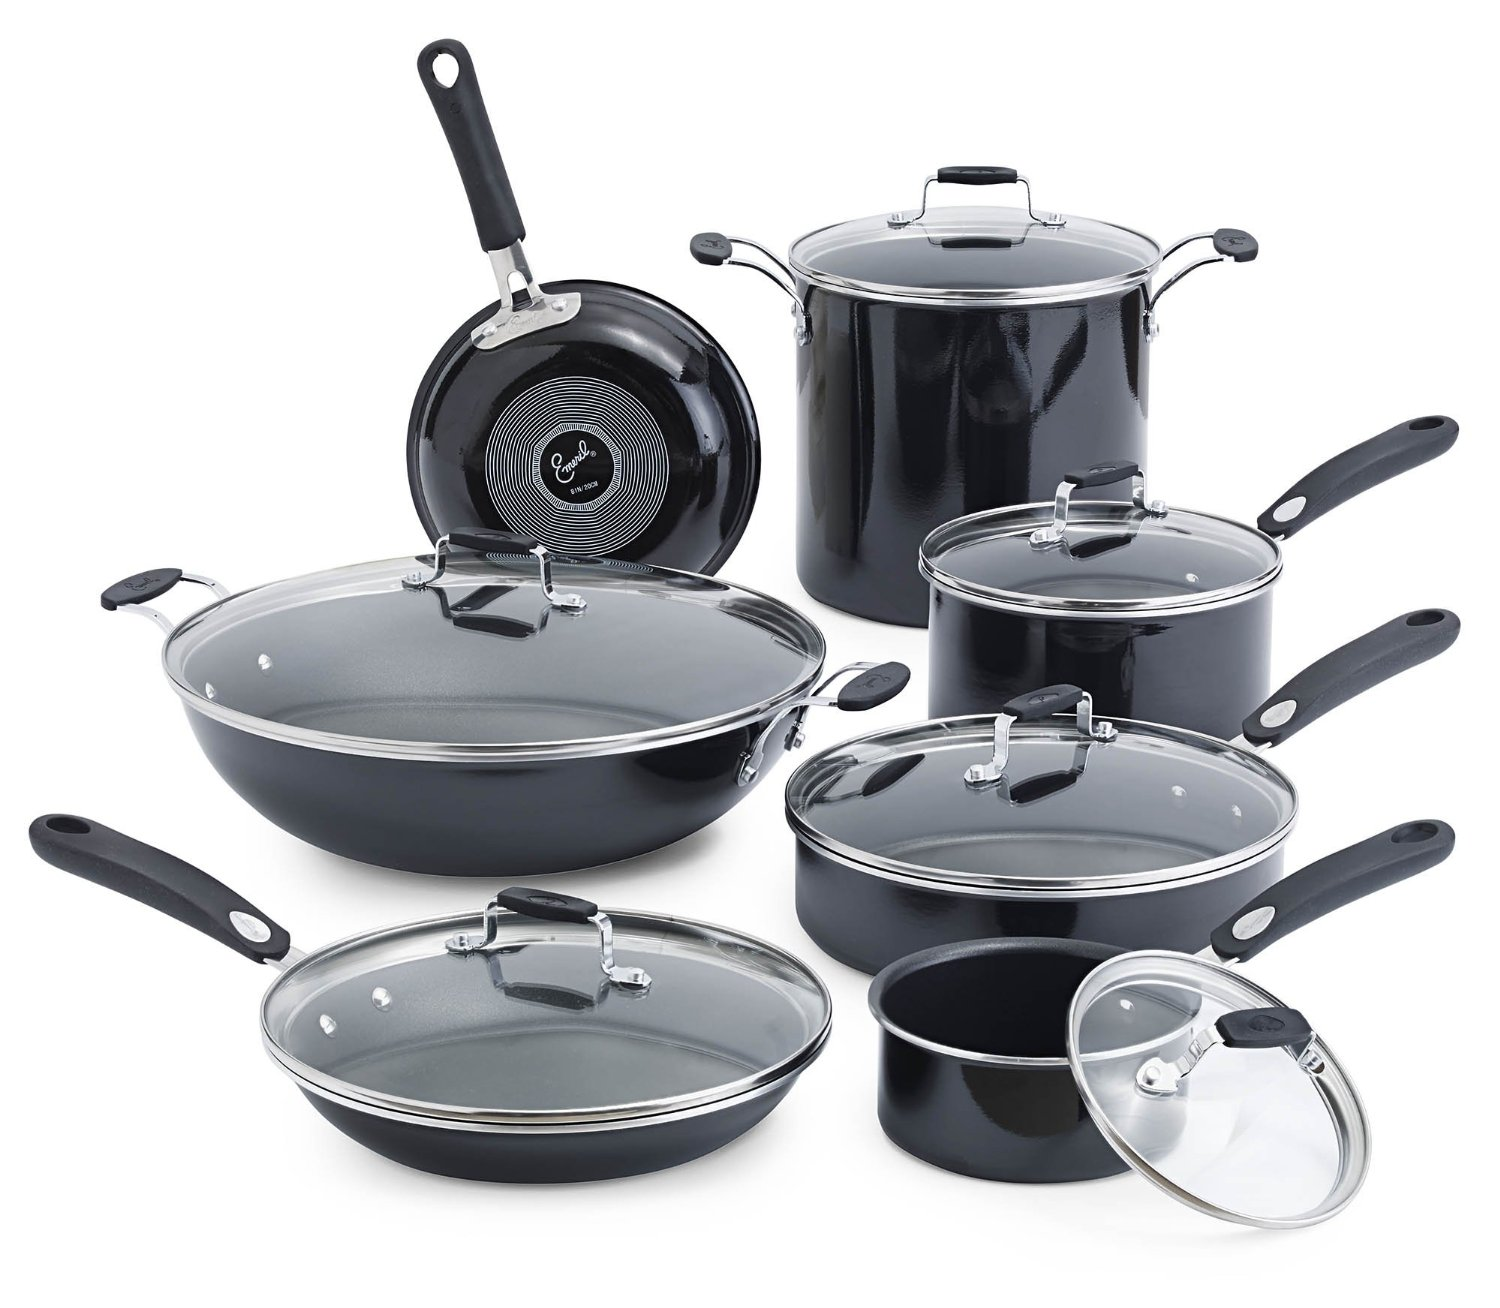 Emeril By All Clad Hard Enamel Nonstick Cookware Set Review